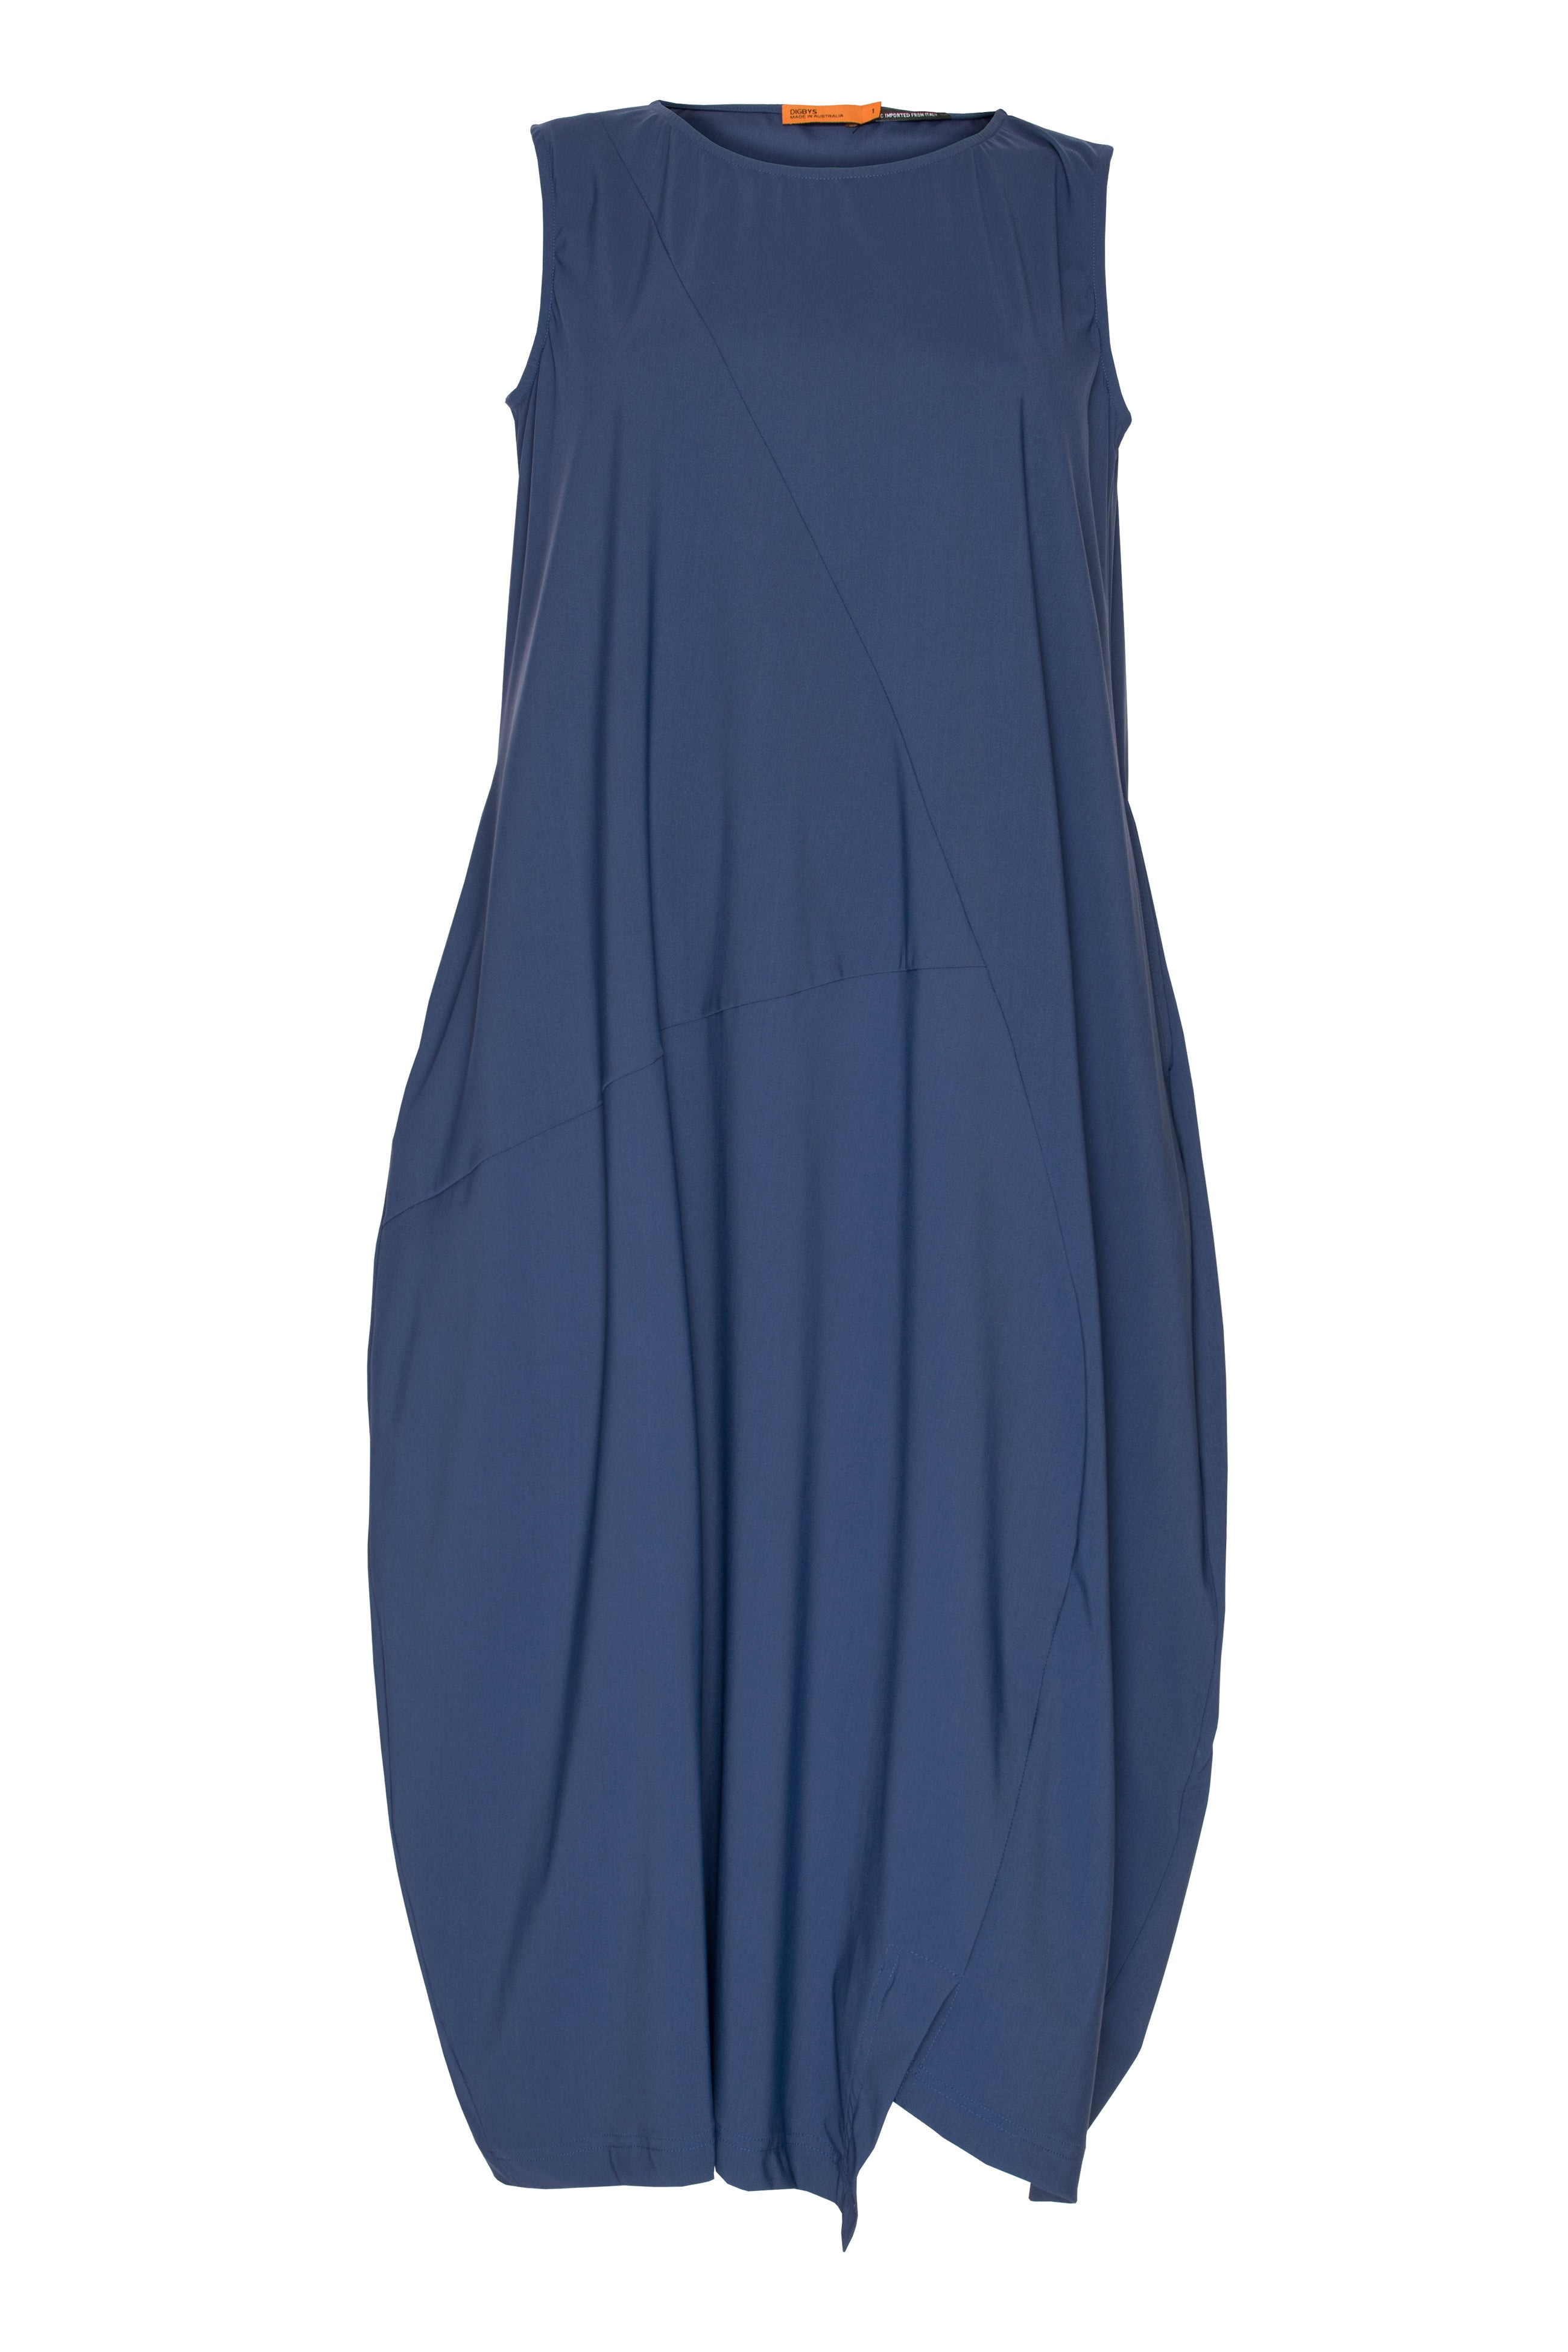 Indigo Asymmetric Panel Singlet Dress 5265